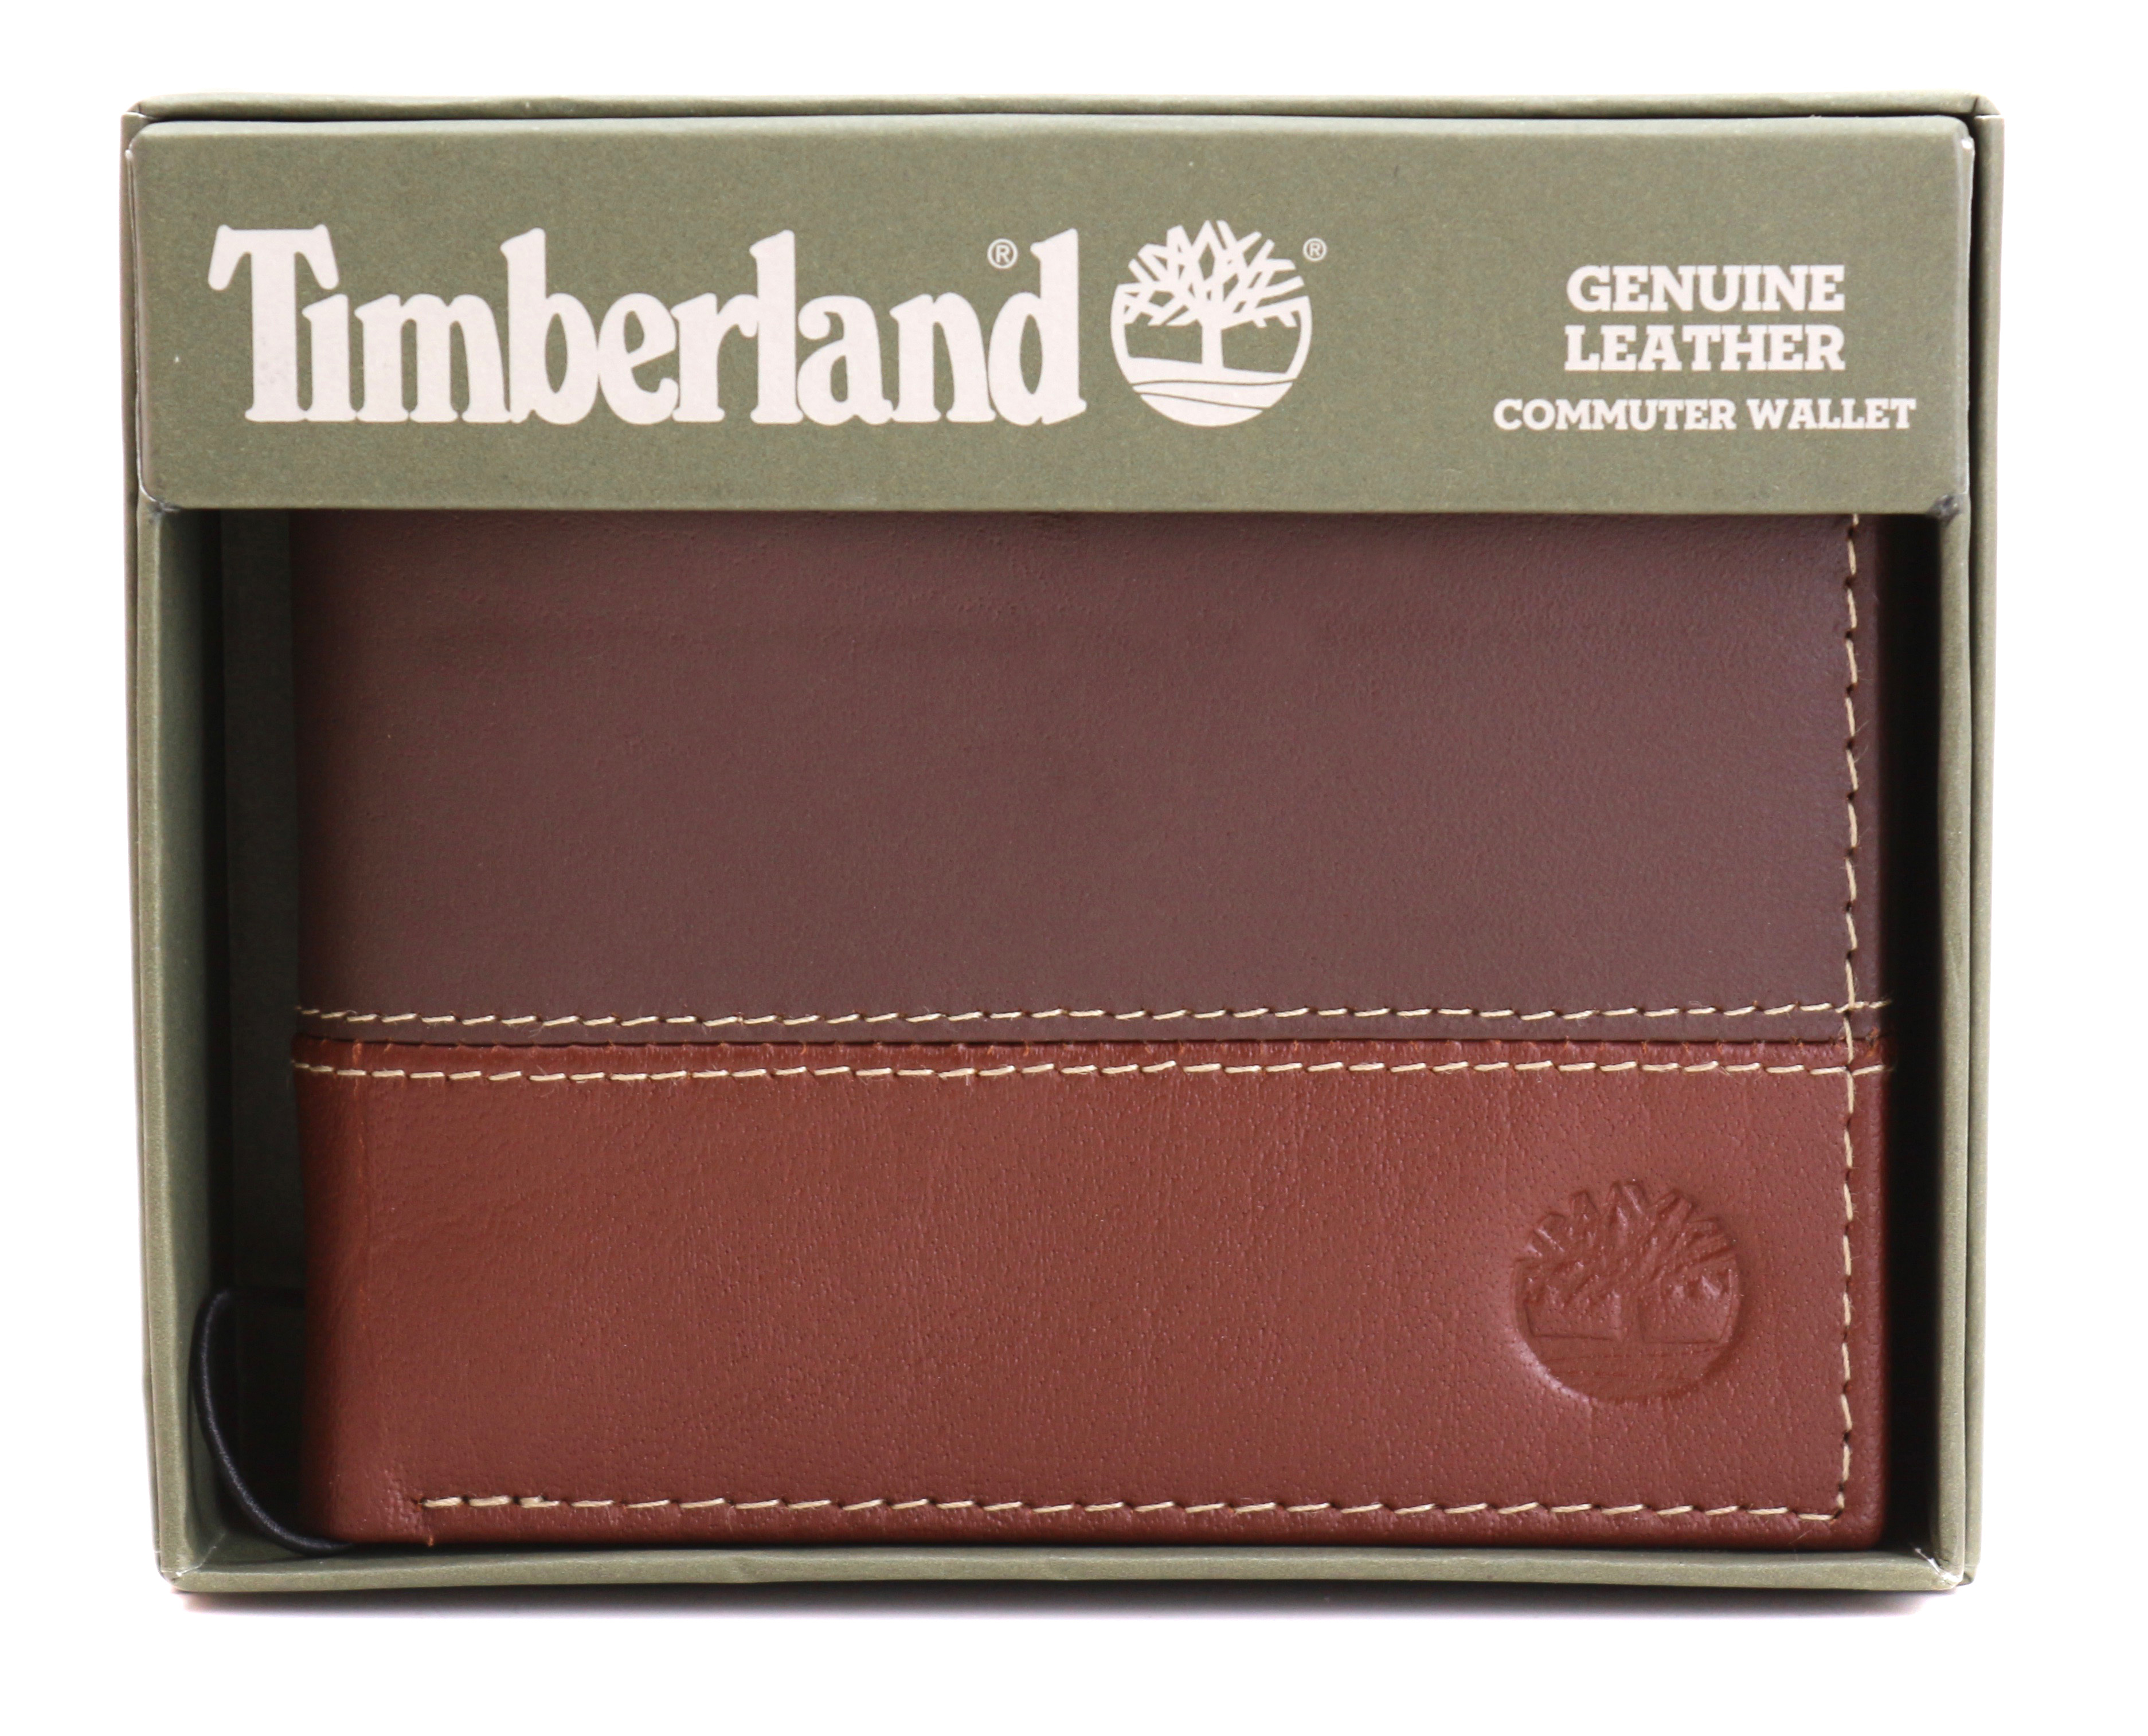 Timberland-Men-039-s-Genuine-Two-Tone-Leather-Credit-Card-Billfold-Commuter-Wallet thumbnail 25